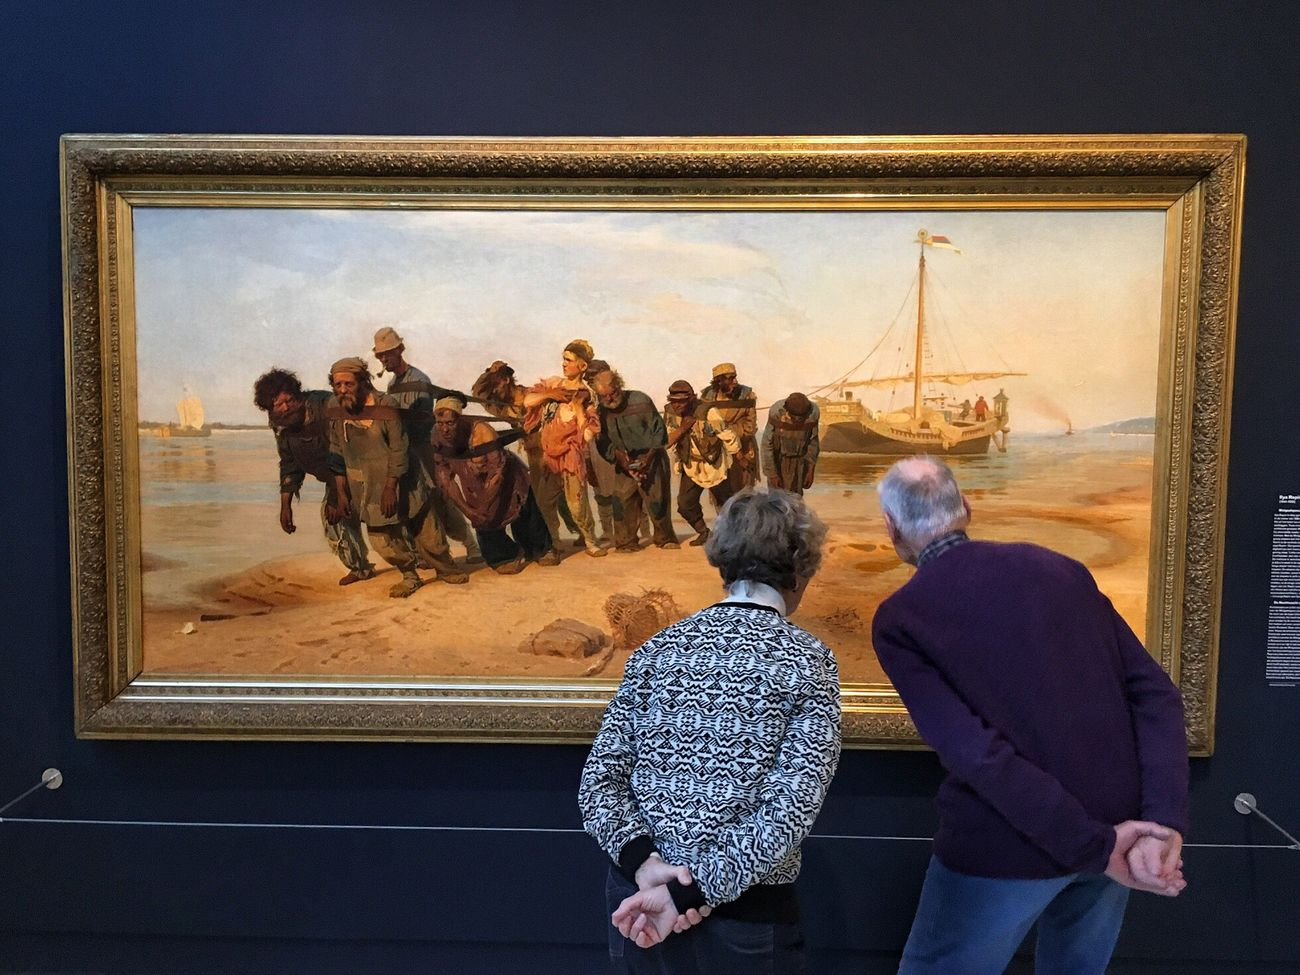 Arts Culture And Entertainment Exhibition Drentsmuseum Assen Museum Painting